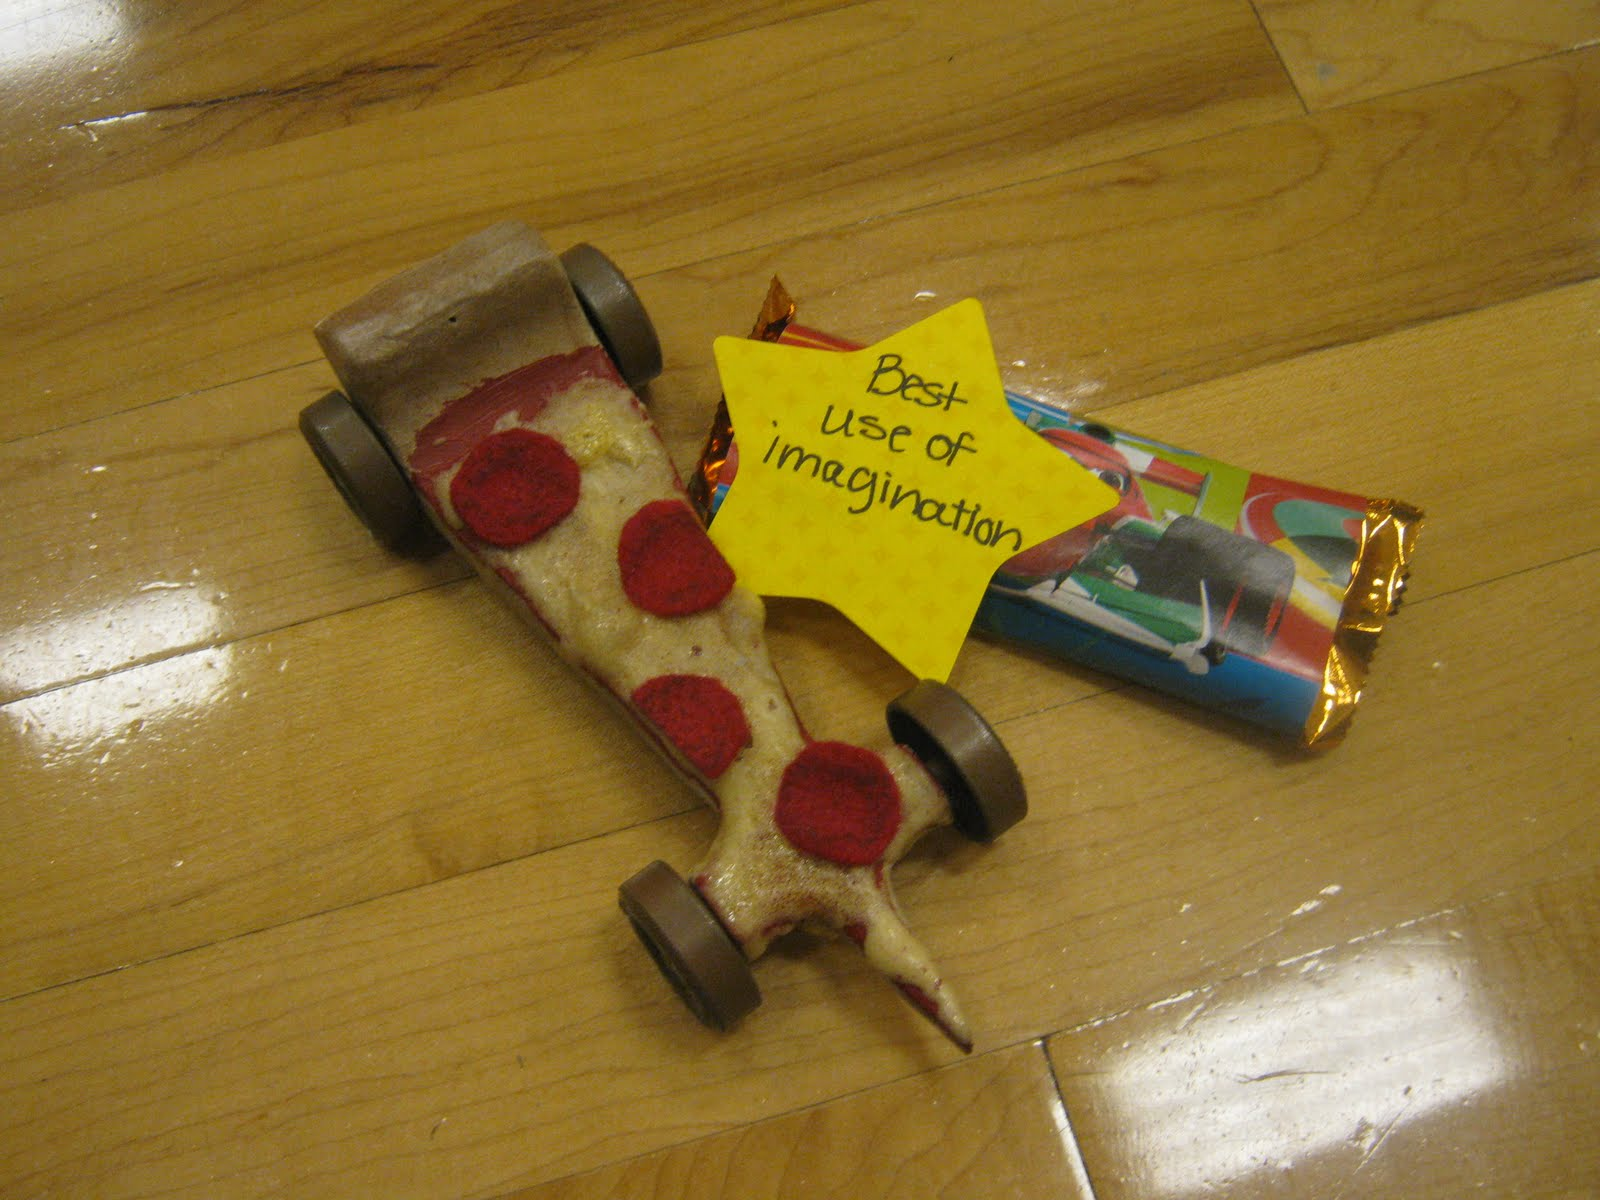 Pinewood Derby Car Design Ideas pinewood derby car designs for speed google search pinewood derby pinterest pinewood derby derby and pinewood derby cars Pizza Pinewood Derby Car Save Learn More At 1bpblogspotcom